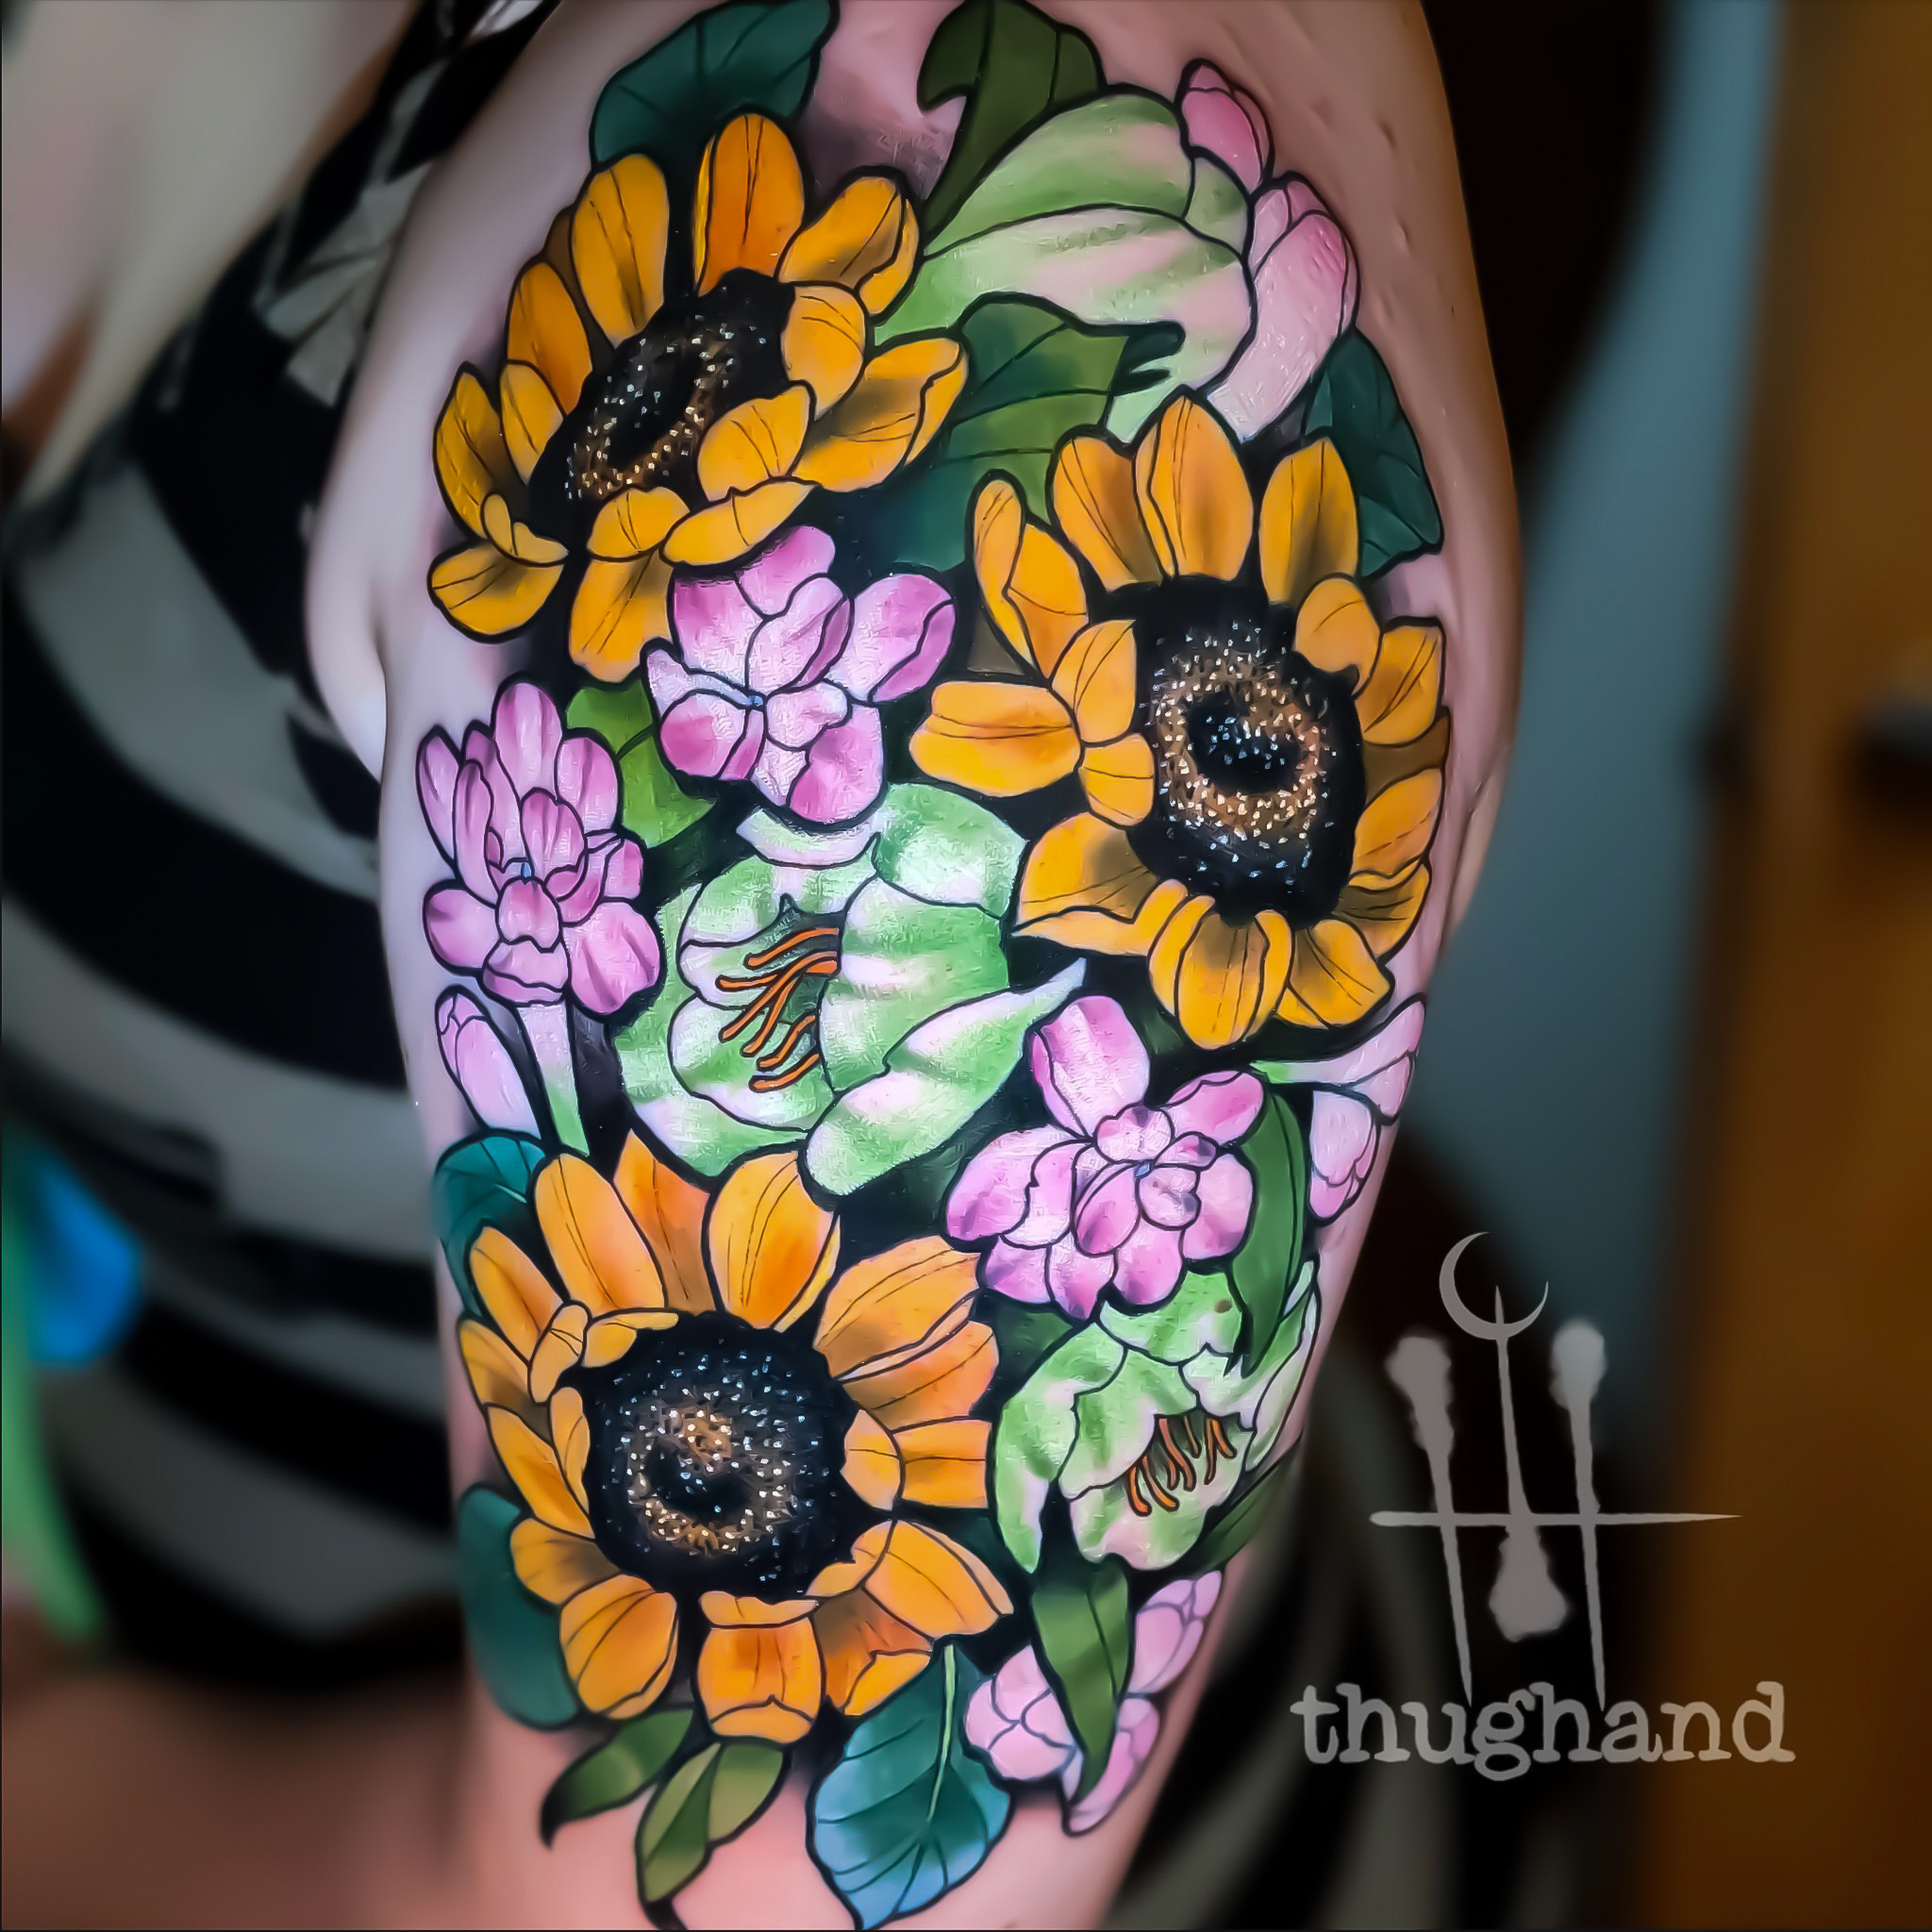 Inspired by her wedding bouquet - Tattoo by Doug Hand #DougHand #illustrative #philly #philadelphia #neotrad #neotraditional